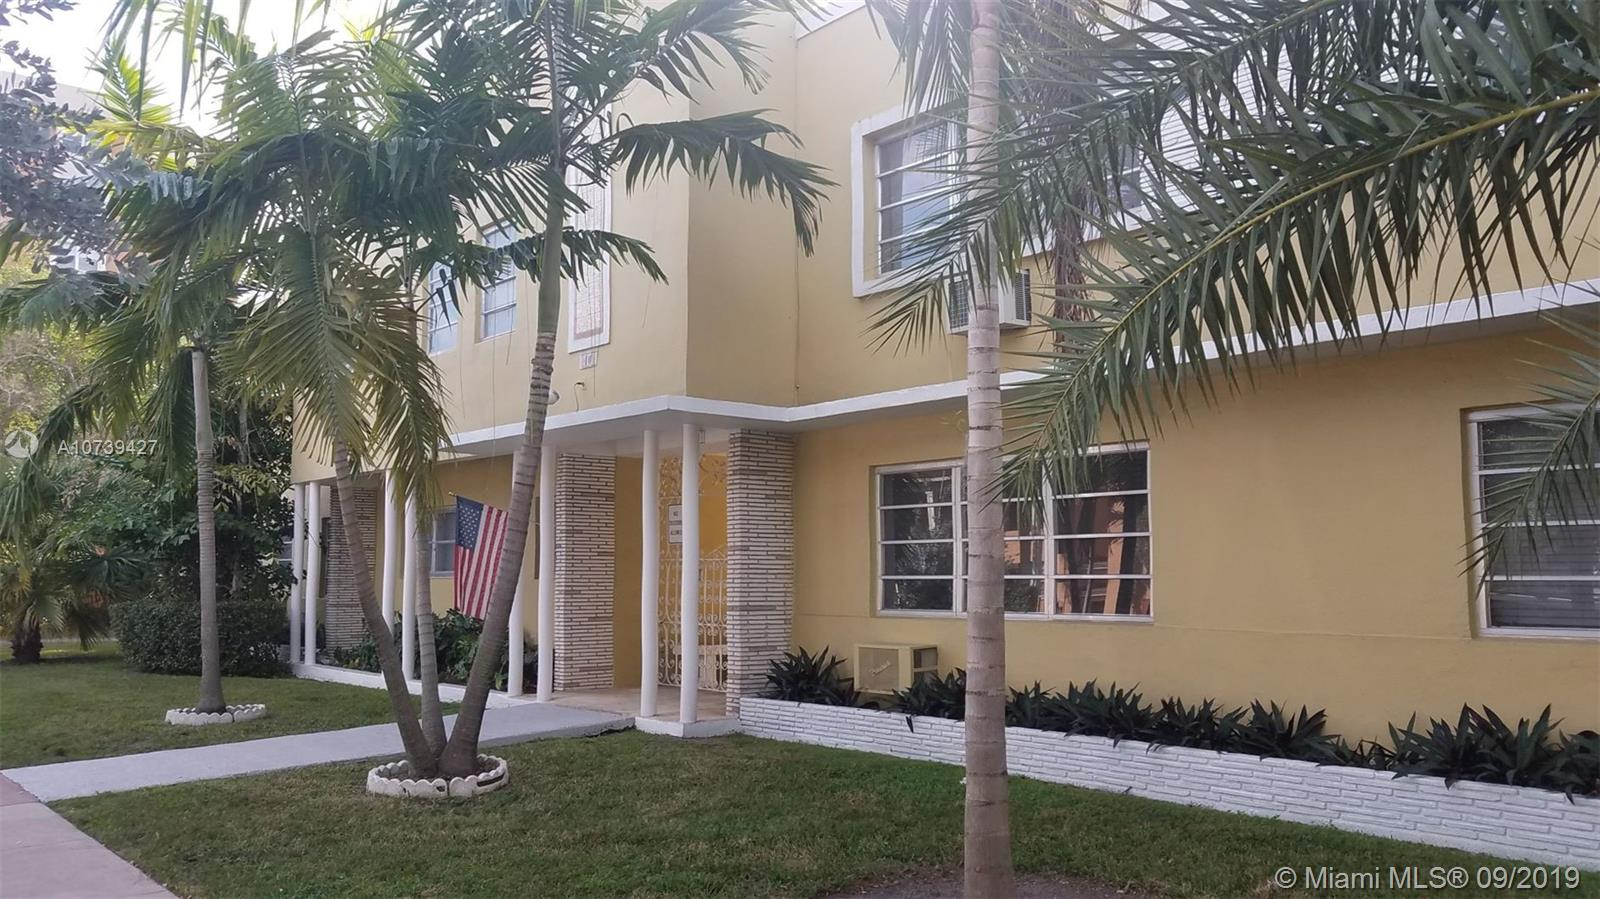 40 Salamanca Ave Unit 8, Coral Gables, Florida 33134